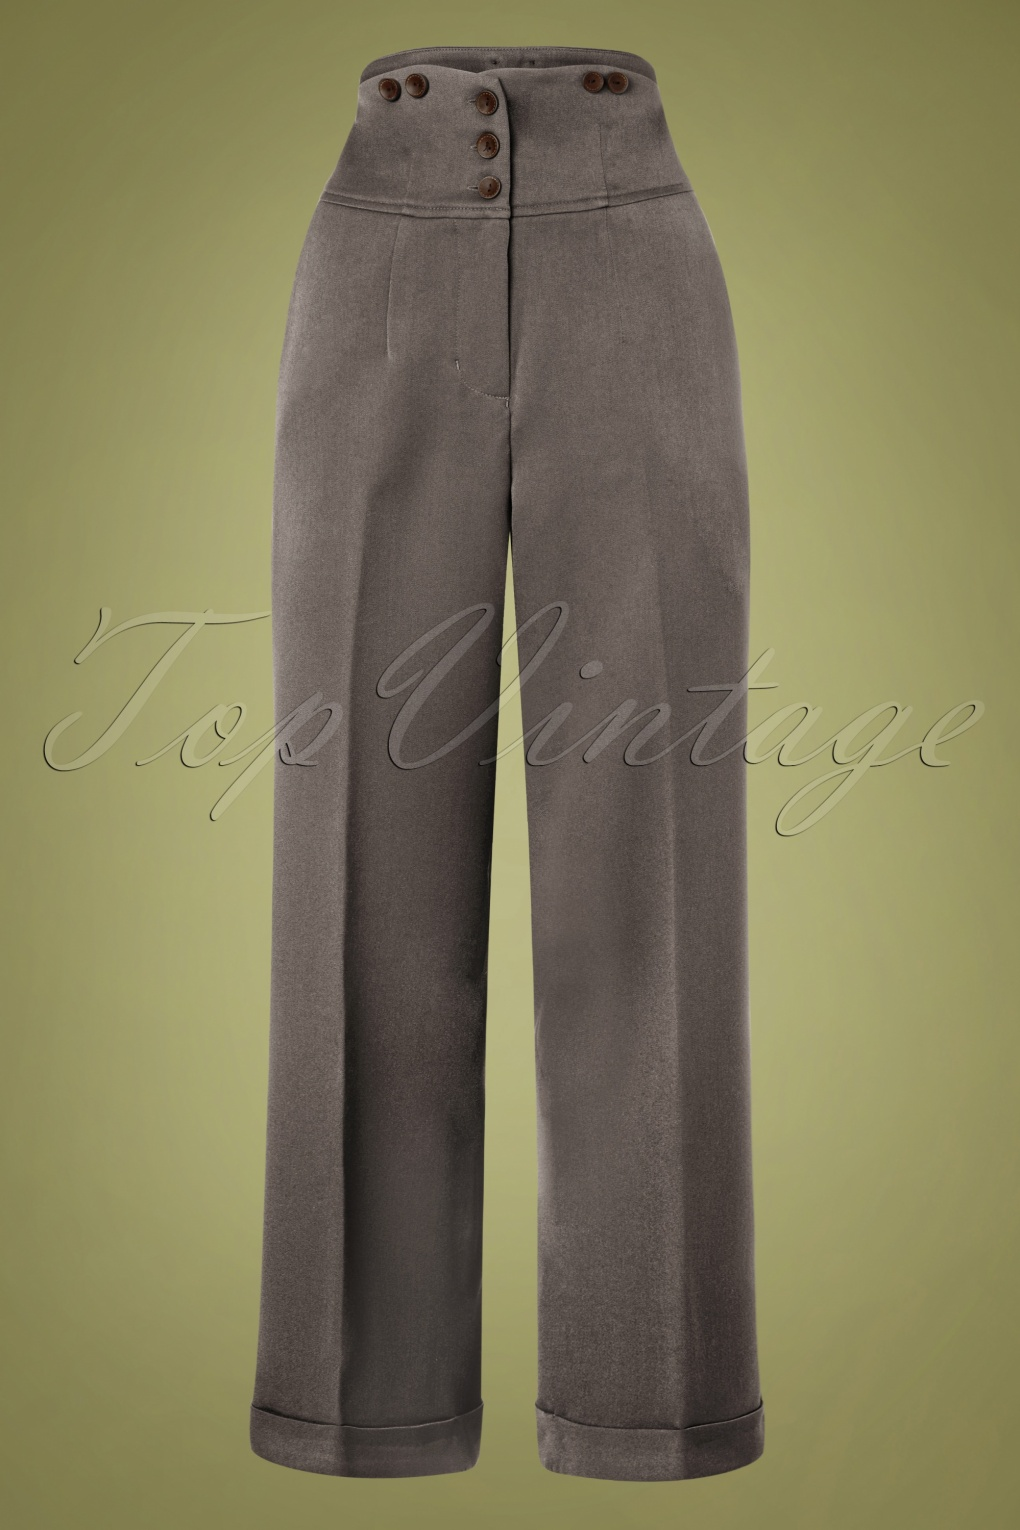 1980s Clothing, Fashion | 80s Style Clothes 50s Girl Boss Trousers in Grey £45.61 AT vintagedancer.com